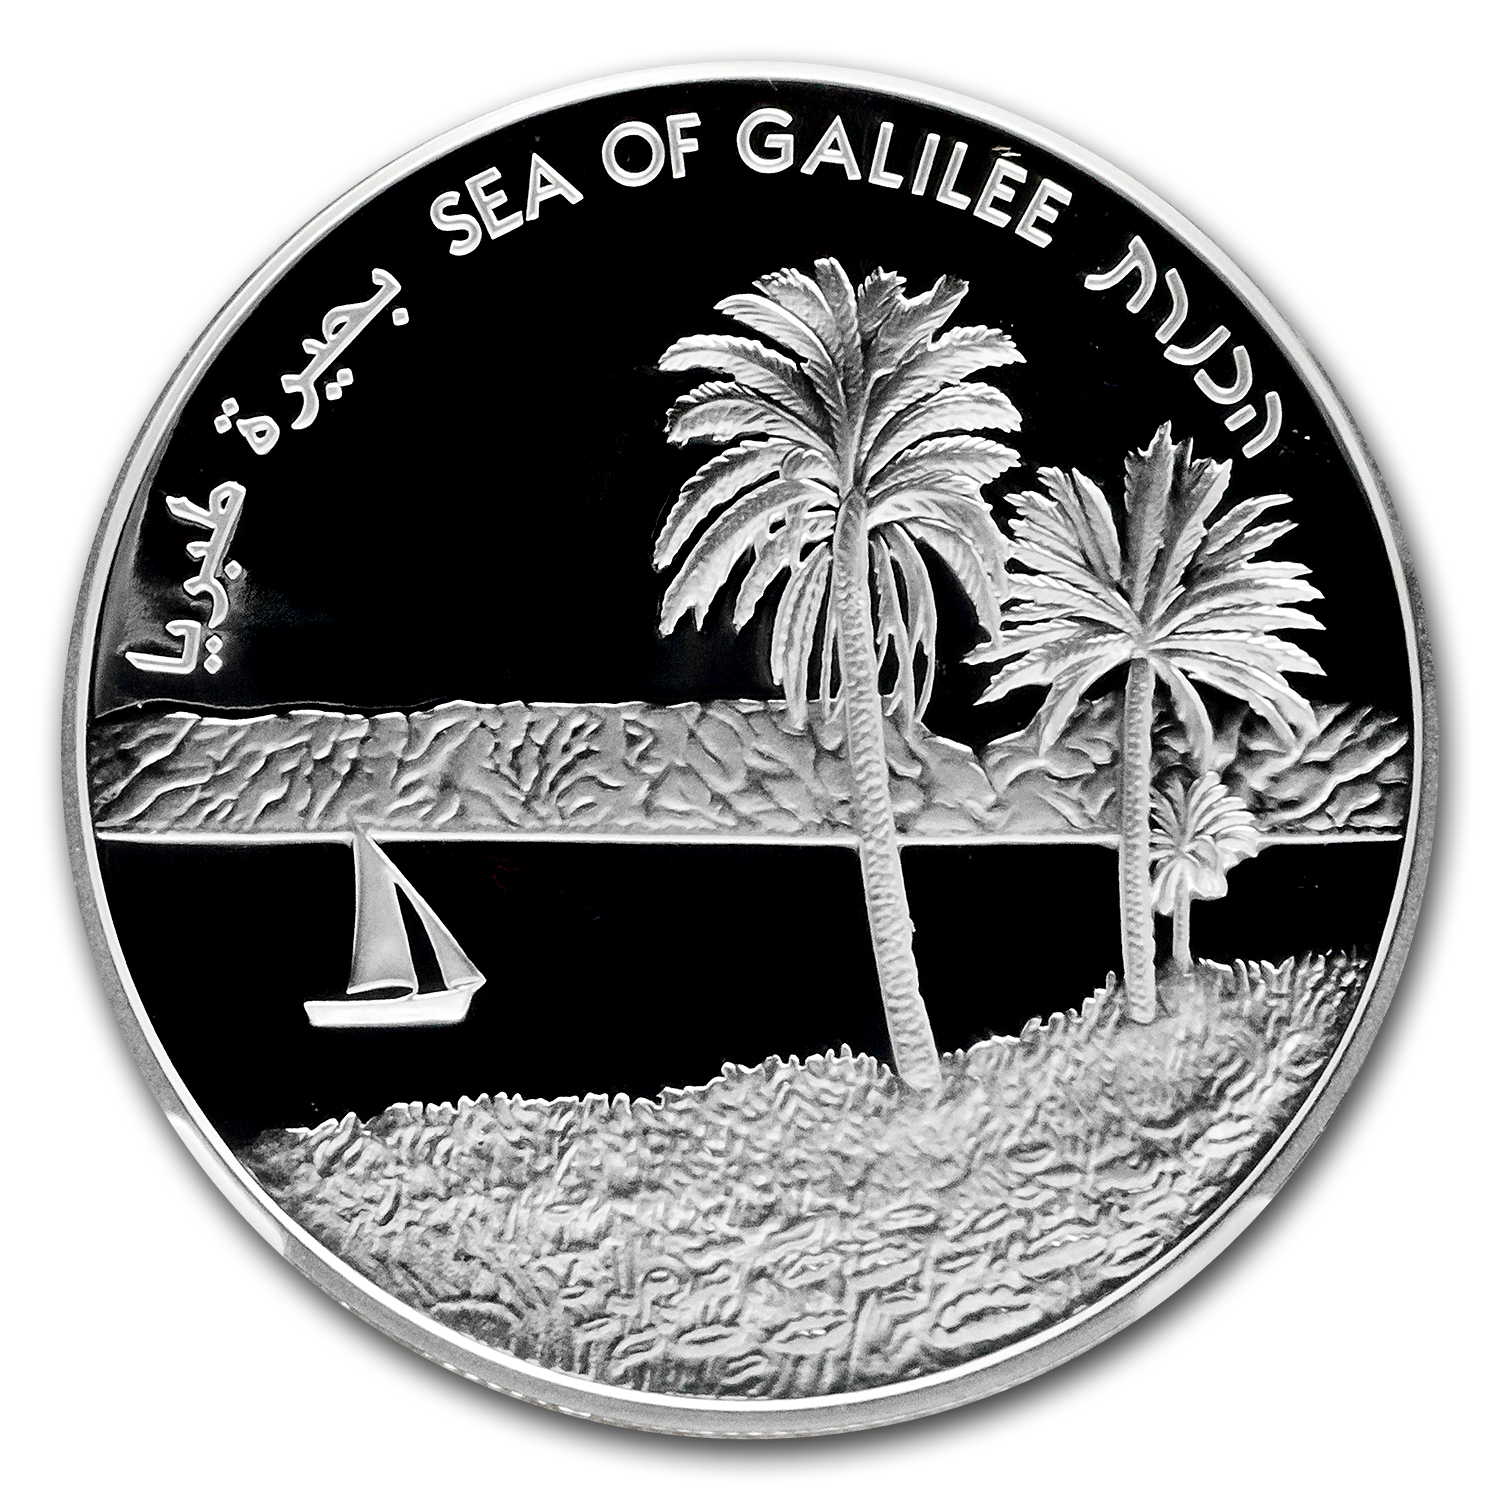 2012 Israel Sea of Galilee Silver 2 NIS PR-70 NGC UCAM